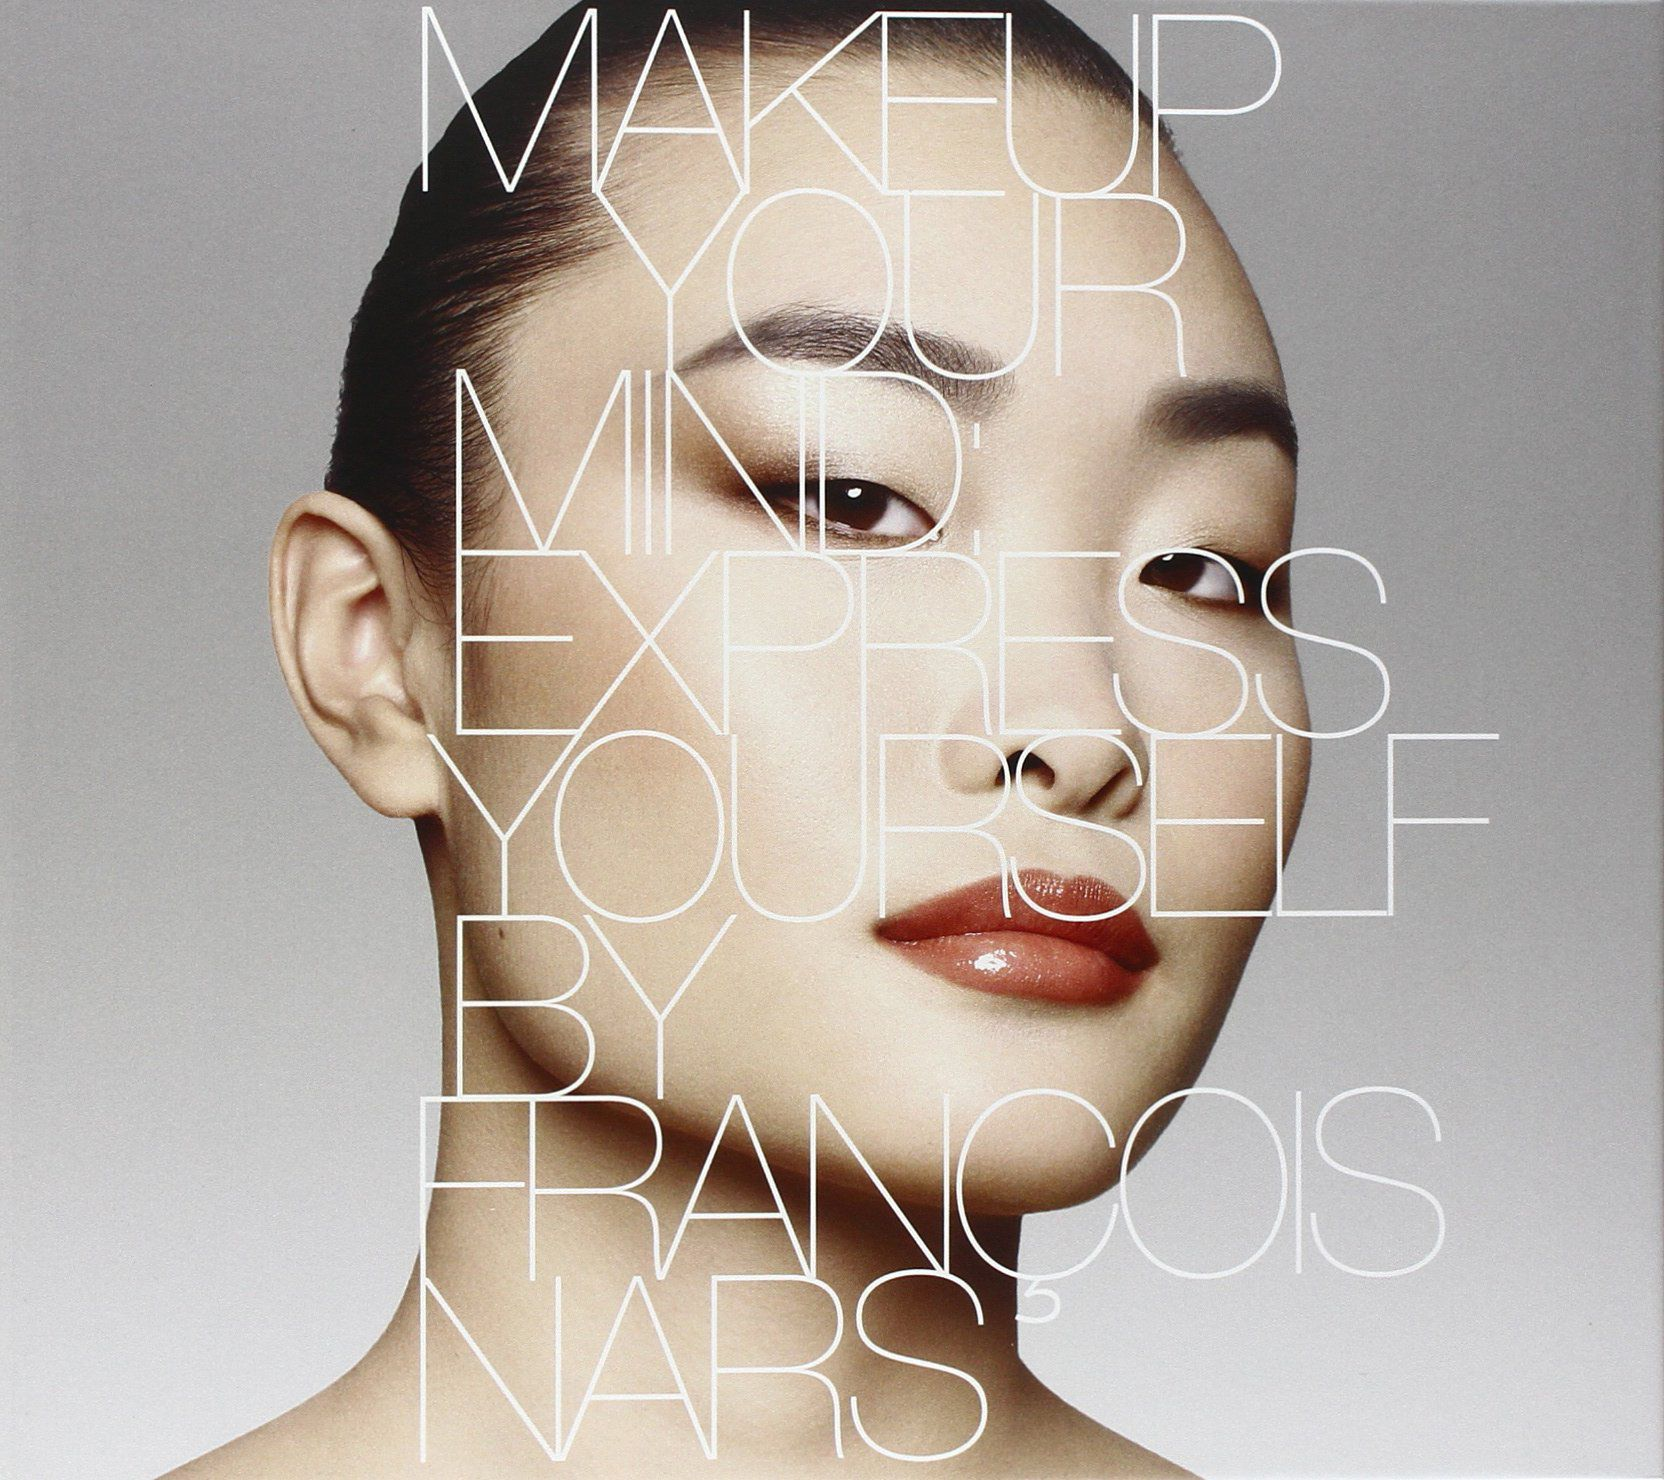 "<p>Forget Pinterest, YouTube tutorials and Instagram, here are seven of the best books for offline beauty inspiration.<br /><br /><em><a href=""http://www.ebay.com.au/itm/NEW-Makeup-Your-Mind-By-Francois-Nars-Hardcover-Free-Shipping-/291282337655?hash=item43d1c7bf77"" target=""_blank"">Makeup Your Mind: Express Yourself</a></em><a href=""http://www.ebay.com.au/itm/NEW-Makeup-Your-Mind-By-Francois-Nars-Hardcover-Free-Shipping-/291282337655?hash=item43d1c7bf77"" target=""_blank"">, François Nars</a><br /><br /></p>"